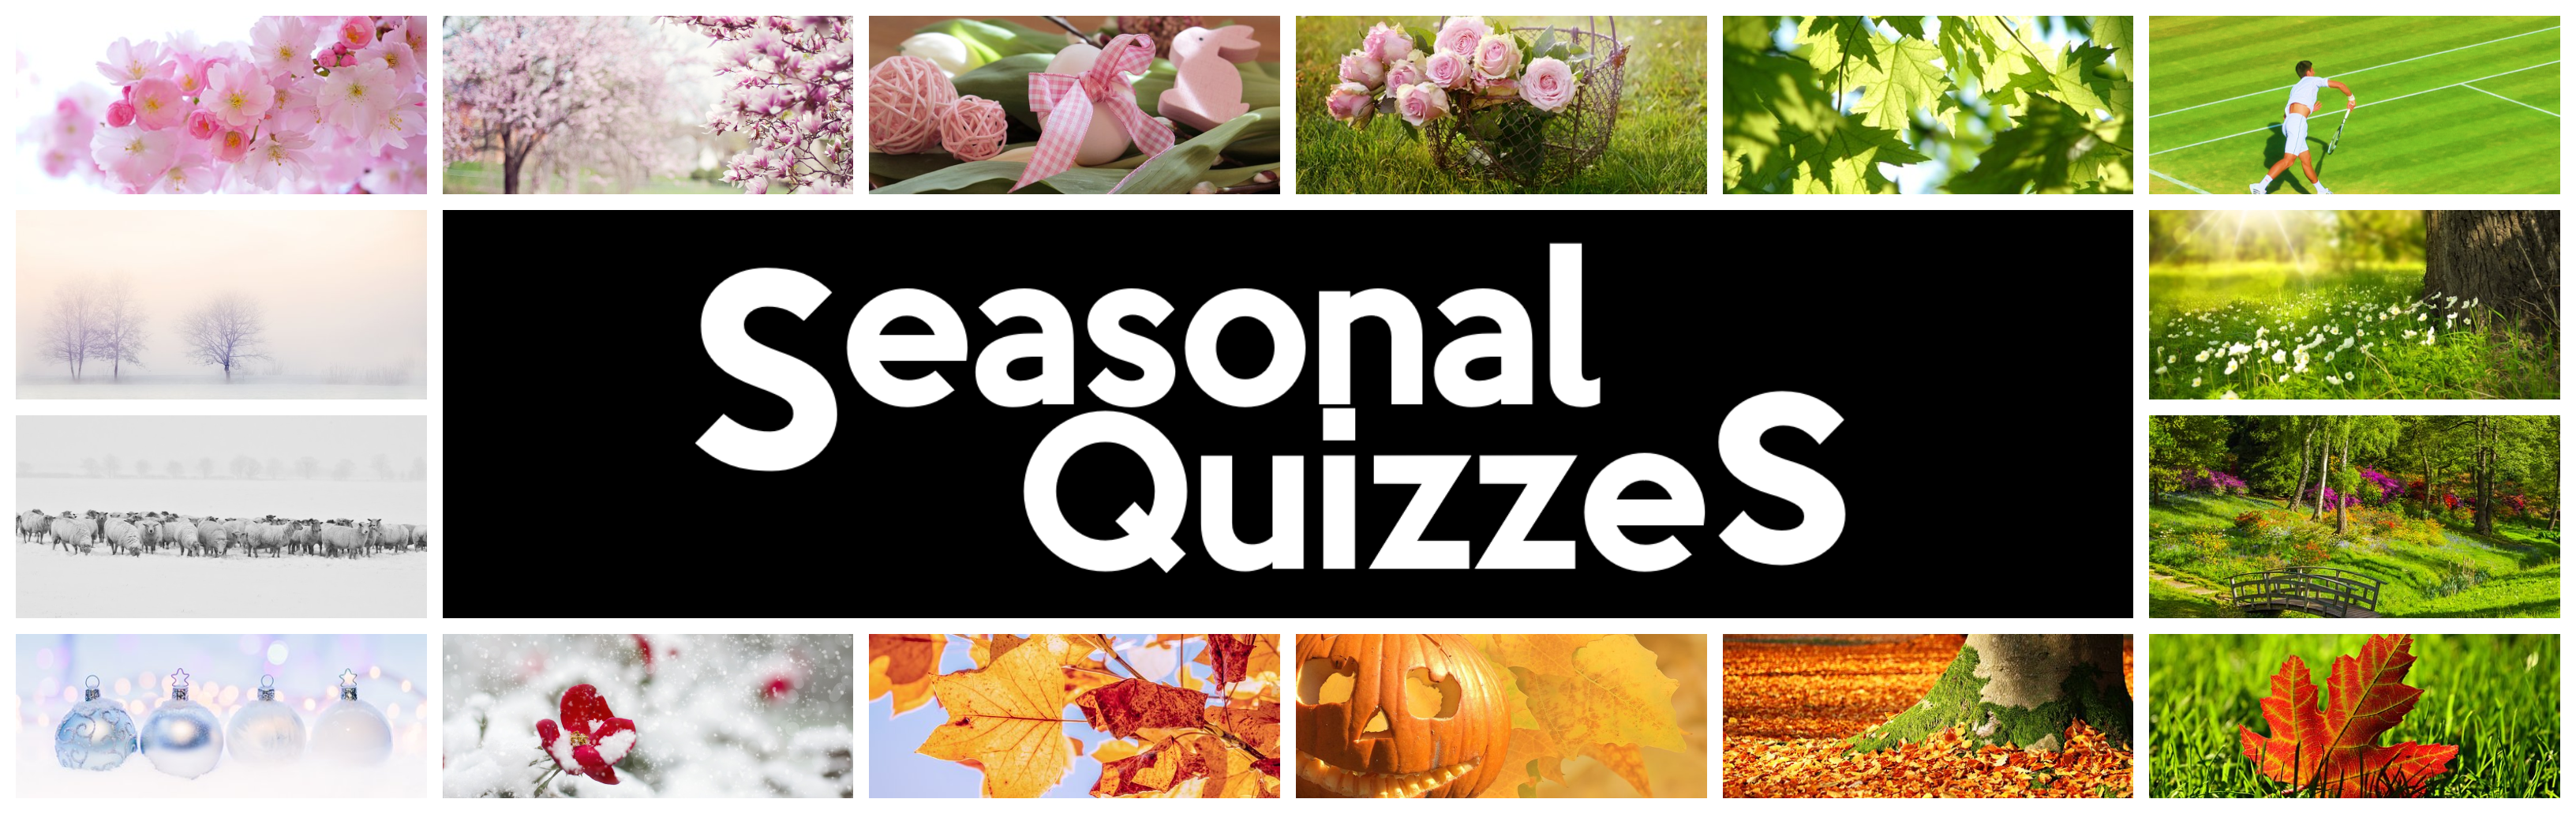 Seasonal Quizzes